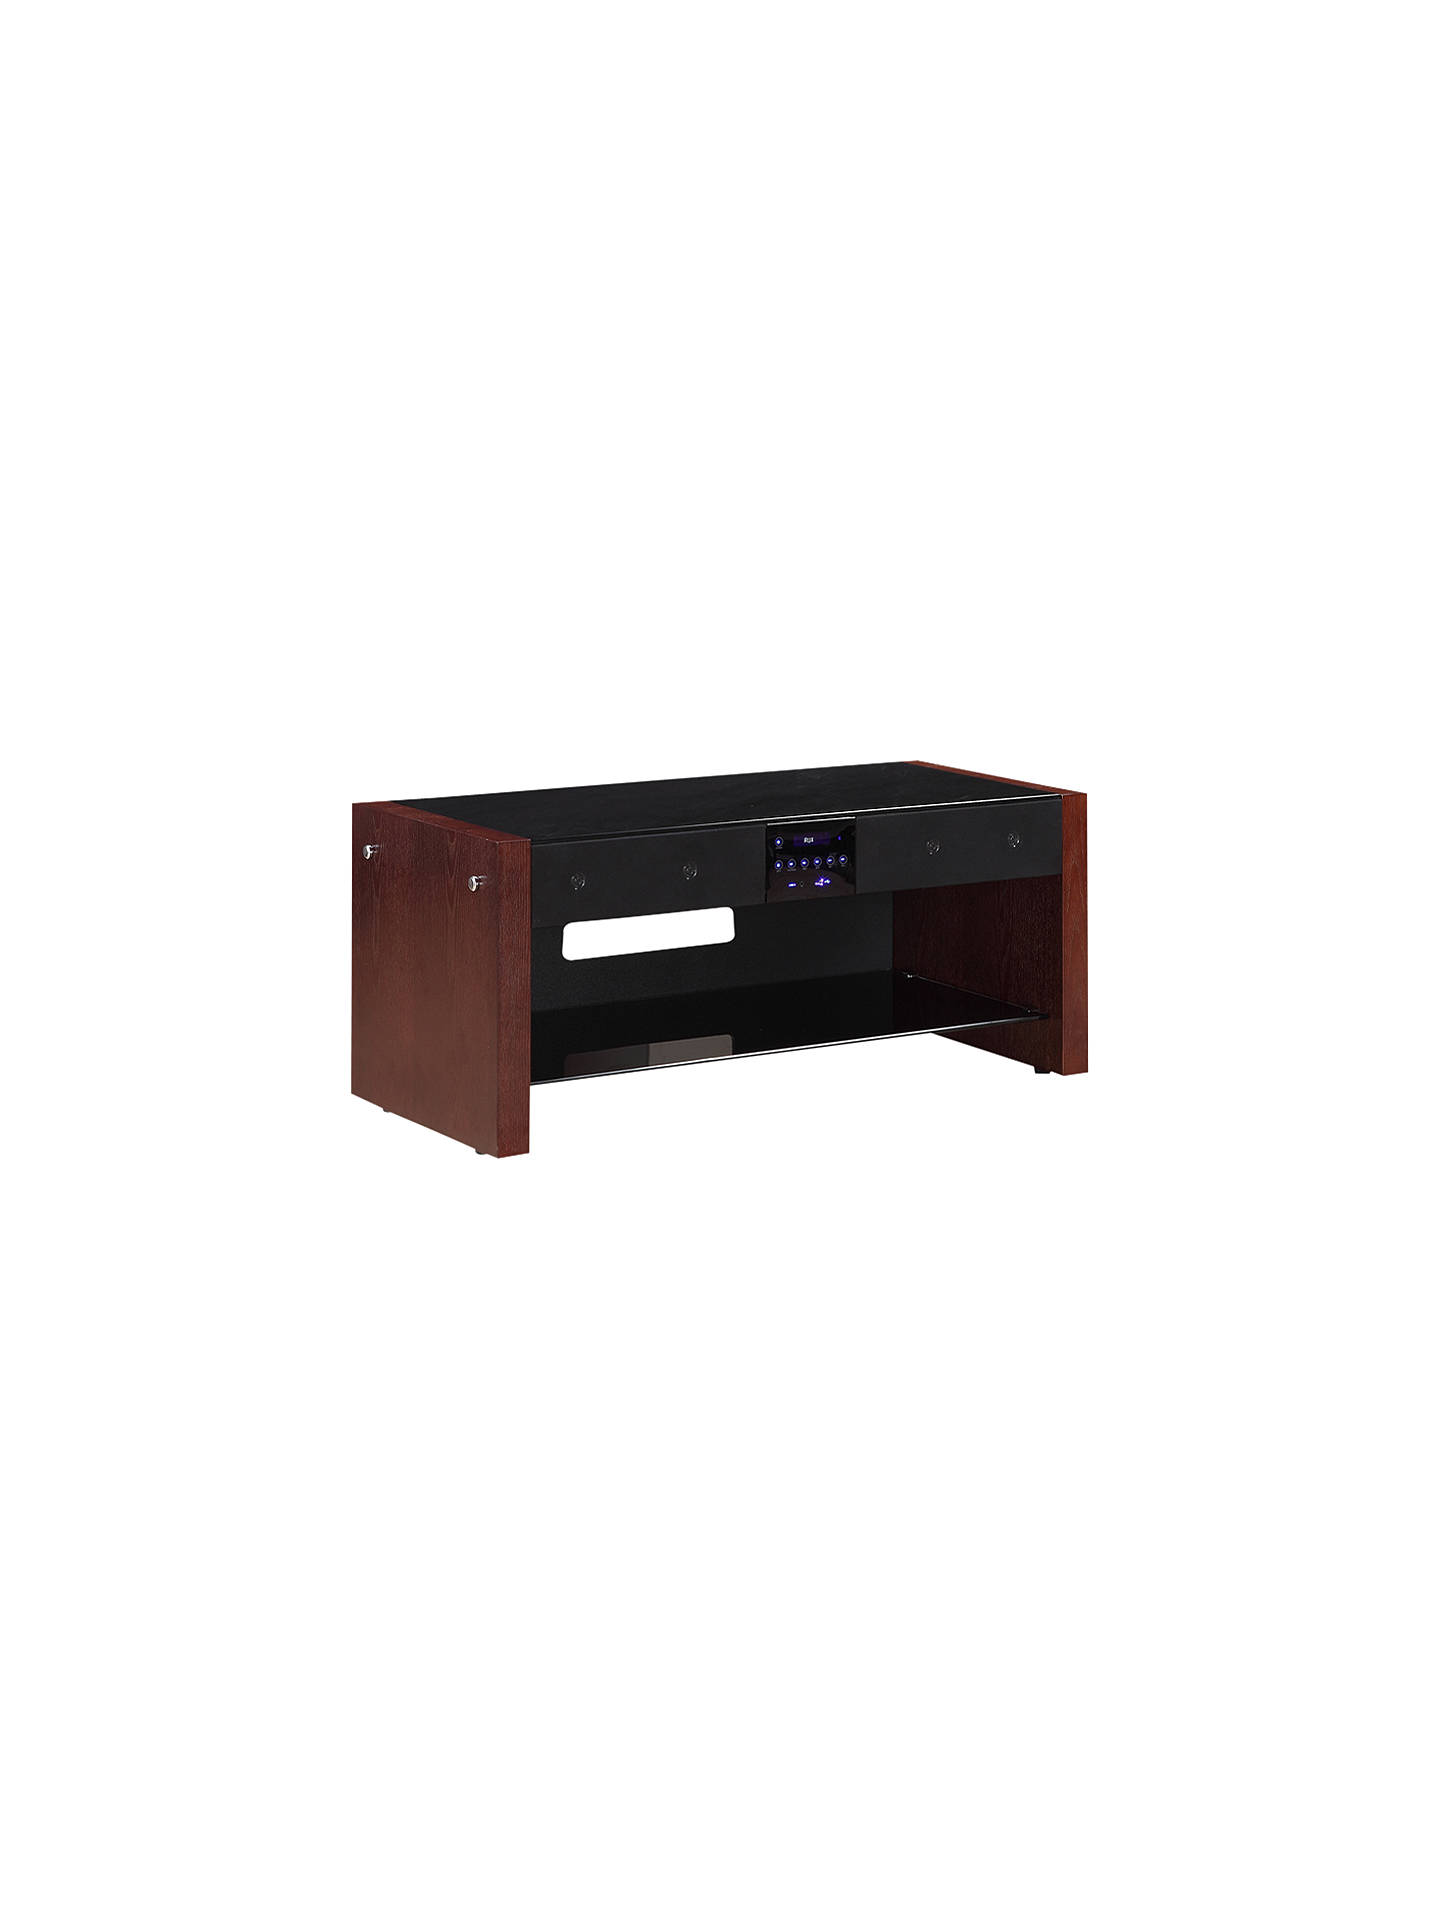 Optimum Soundstation TV Stand with Speakers for TVs up to 42